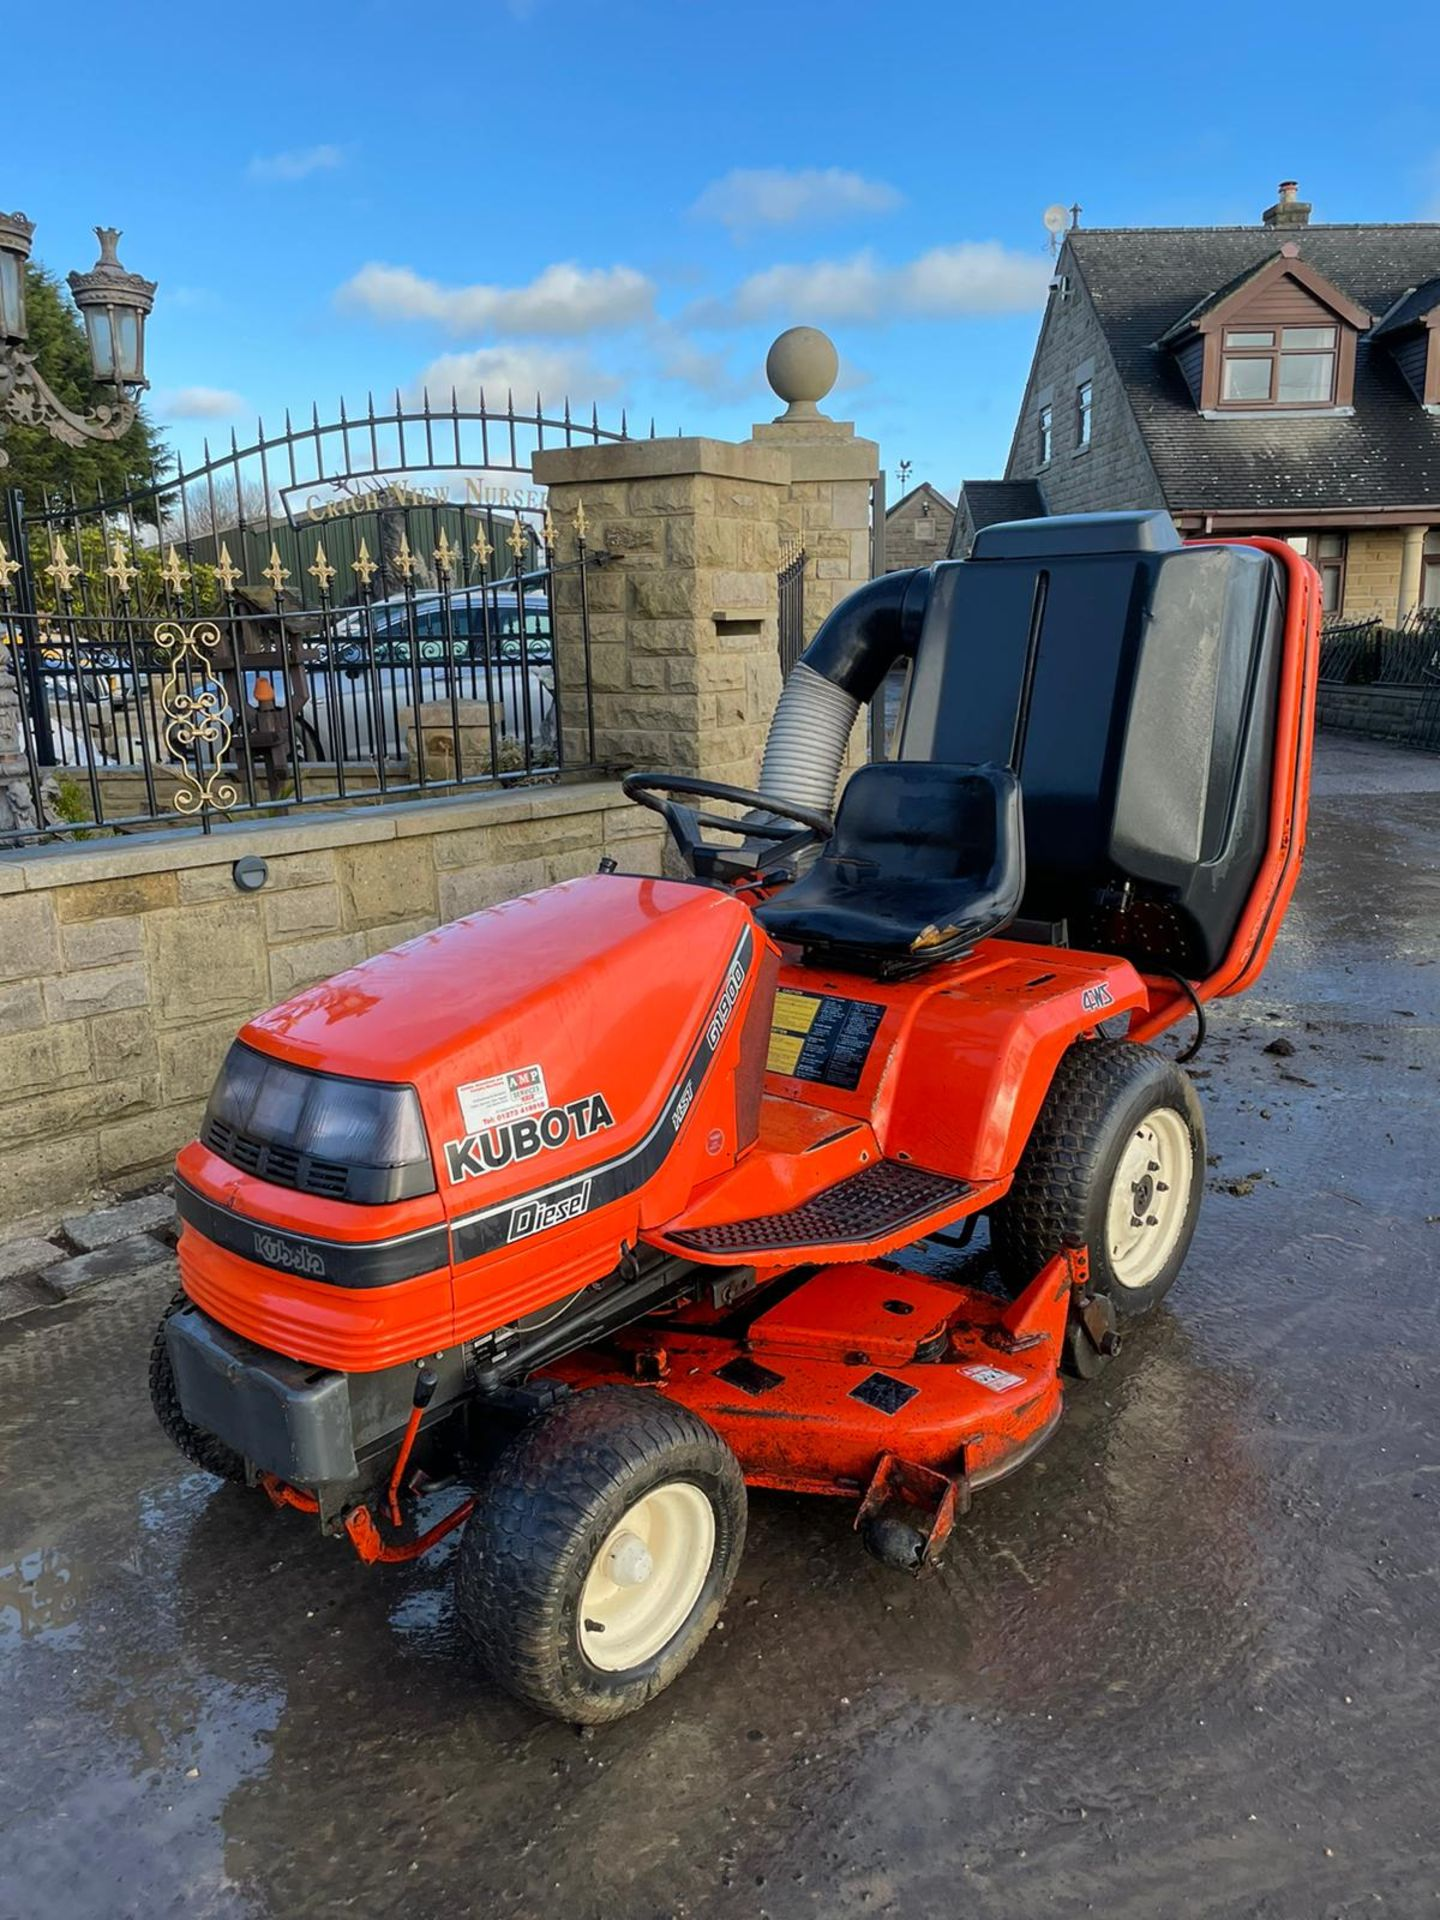 KUBOTA G1900 HST 4WS RIDE ON MOWER WITH COLLECTOR, RUNS, DRIVES AND CUTS, DIESEL ENGINE *NO VAT* - Image 3 of 7